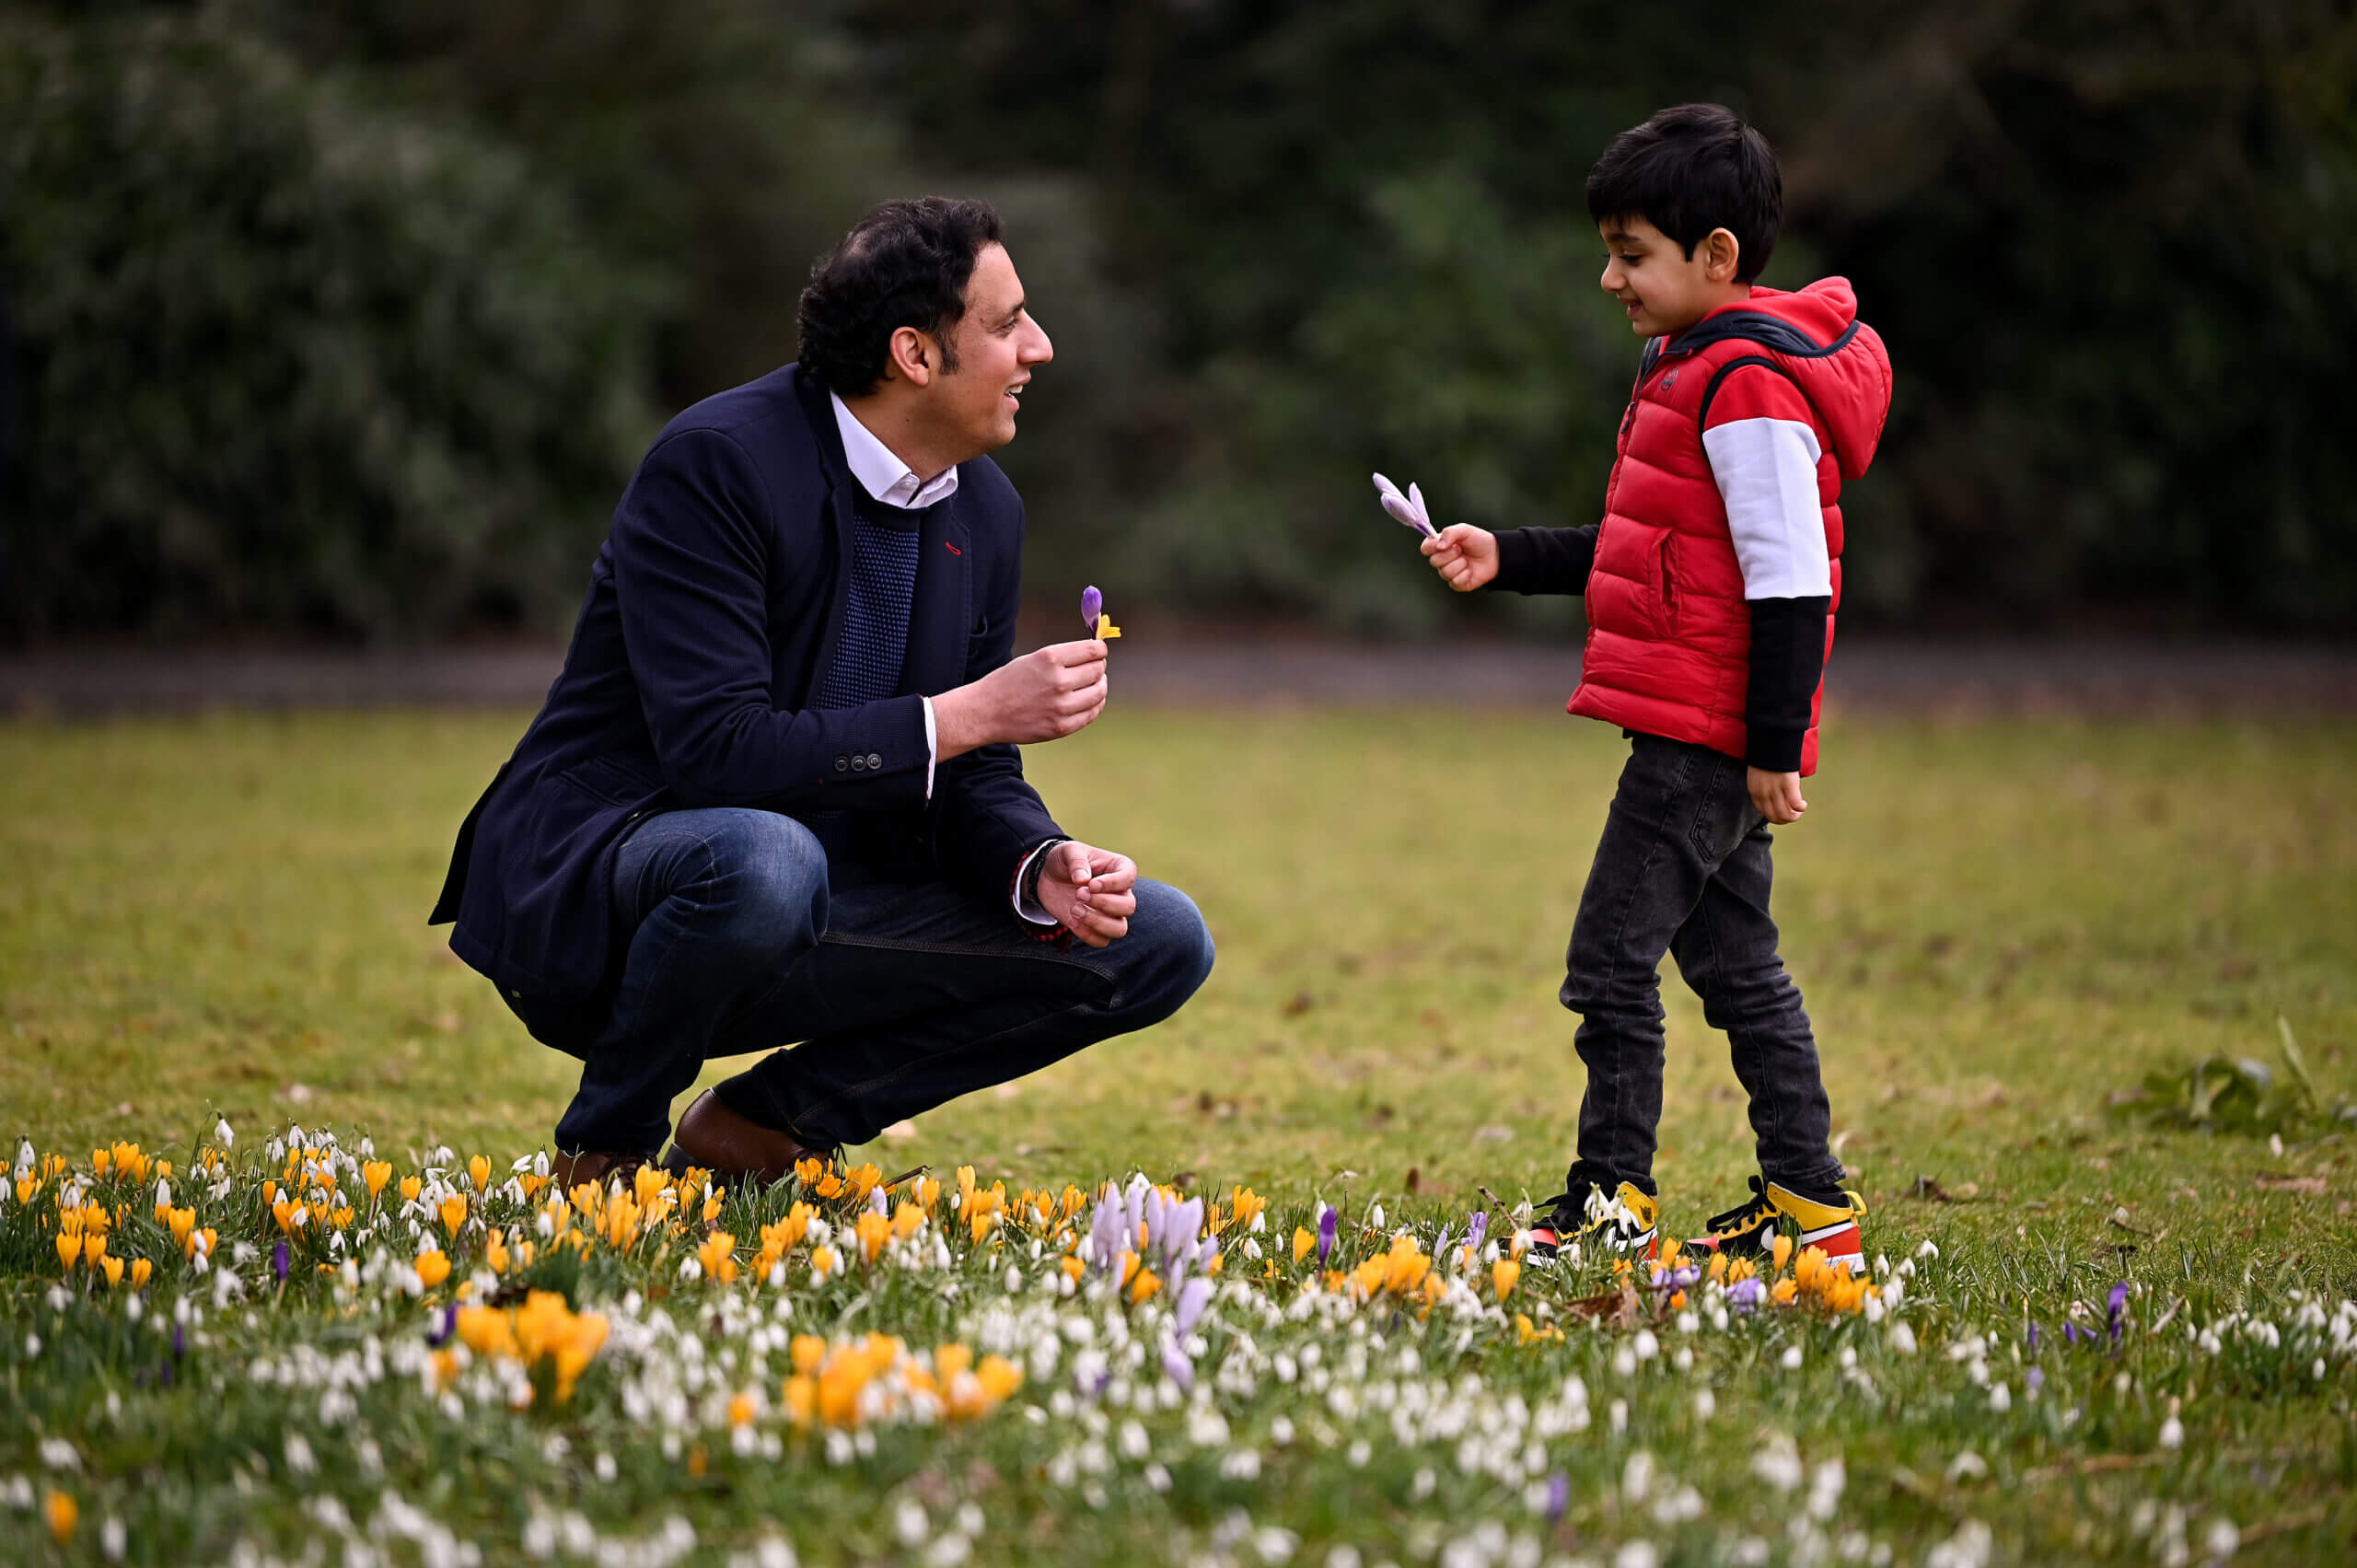 GLASGOW, SCOTLAND - FEBRUARY 27: Anas Sarwar and his son Ailyan, enjoy a visit to Maxwell park following the announcement that the MSP is the new Scottish Labour leader on February 27, 2021 in Glasgow, Scotland. Mr Sarwar, who is the first minority ethnic leader of a major political party in the UK, got 57.6% of the vote, while Ms Lennon got 42.4%. (Photo by Jeff J Mitchell/Getty Images)